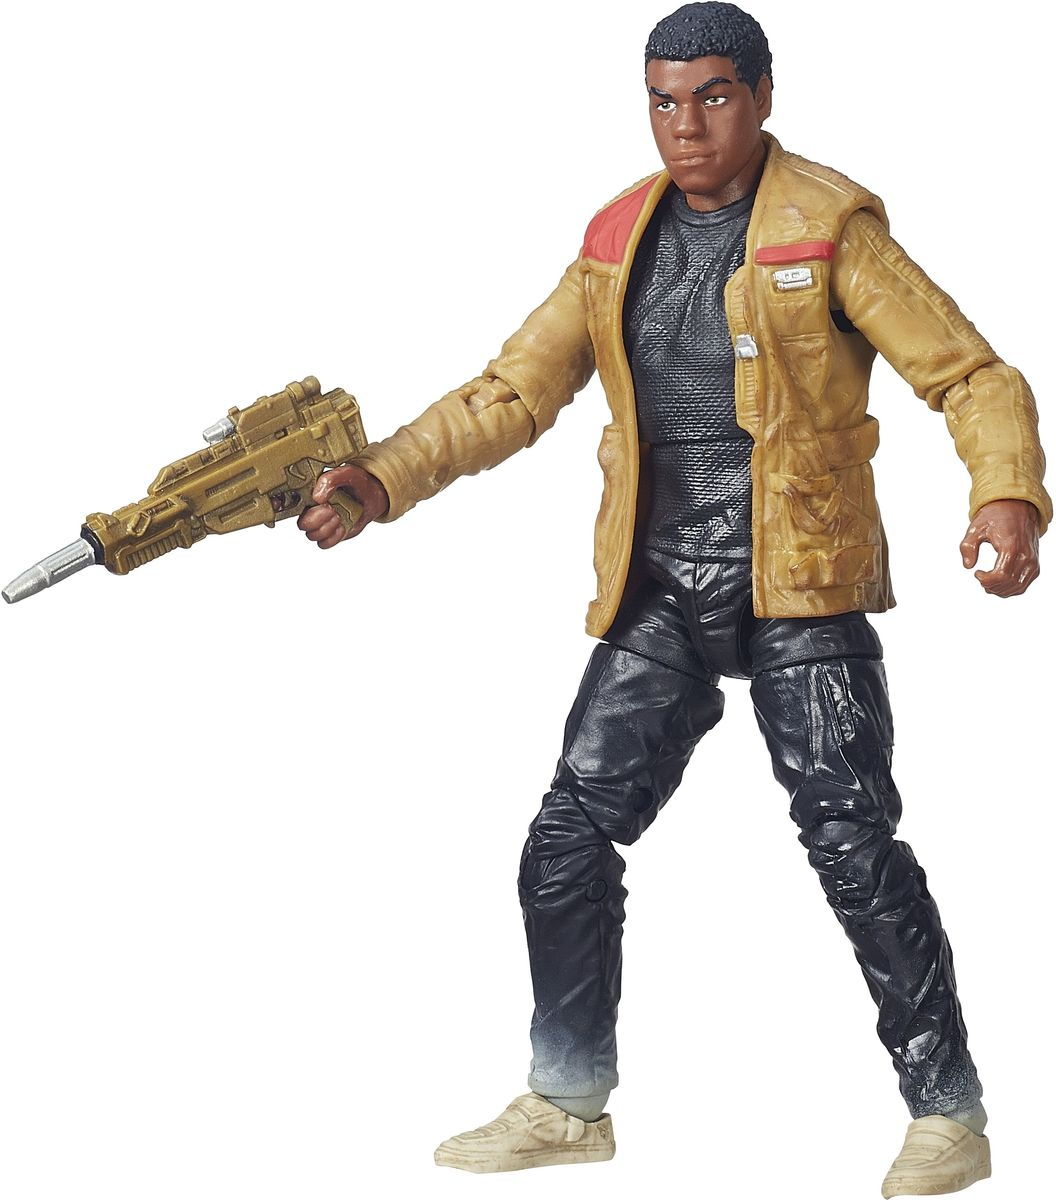 Star Wars Фигурка Black Series Finn Jakku интернет магазин black star одежда